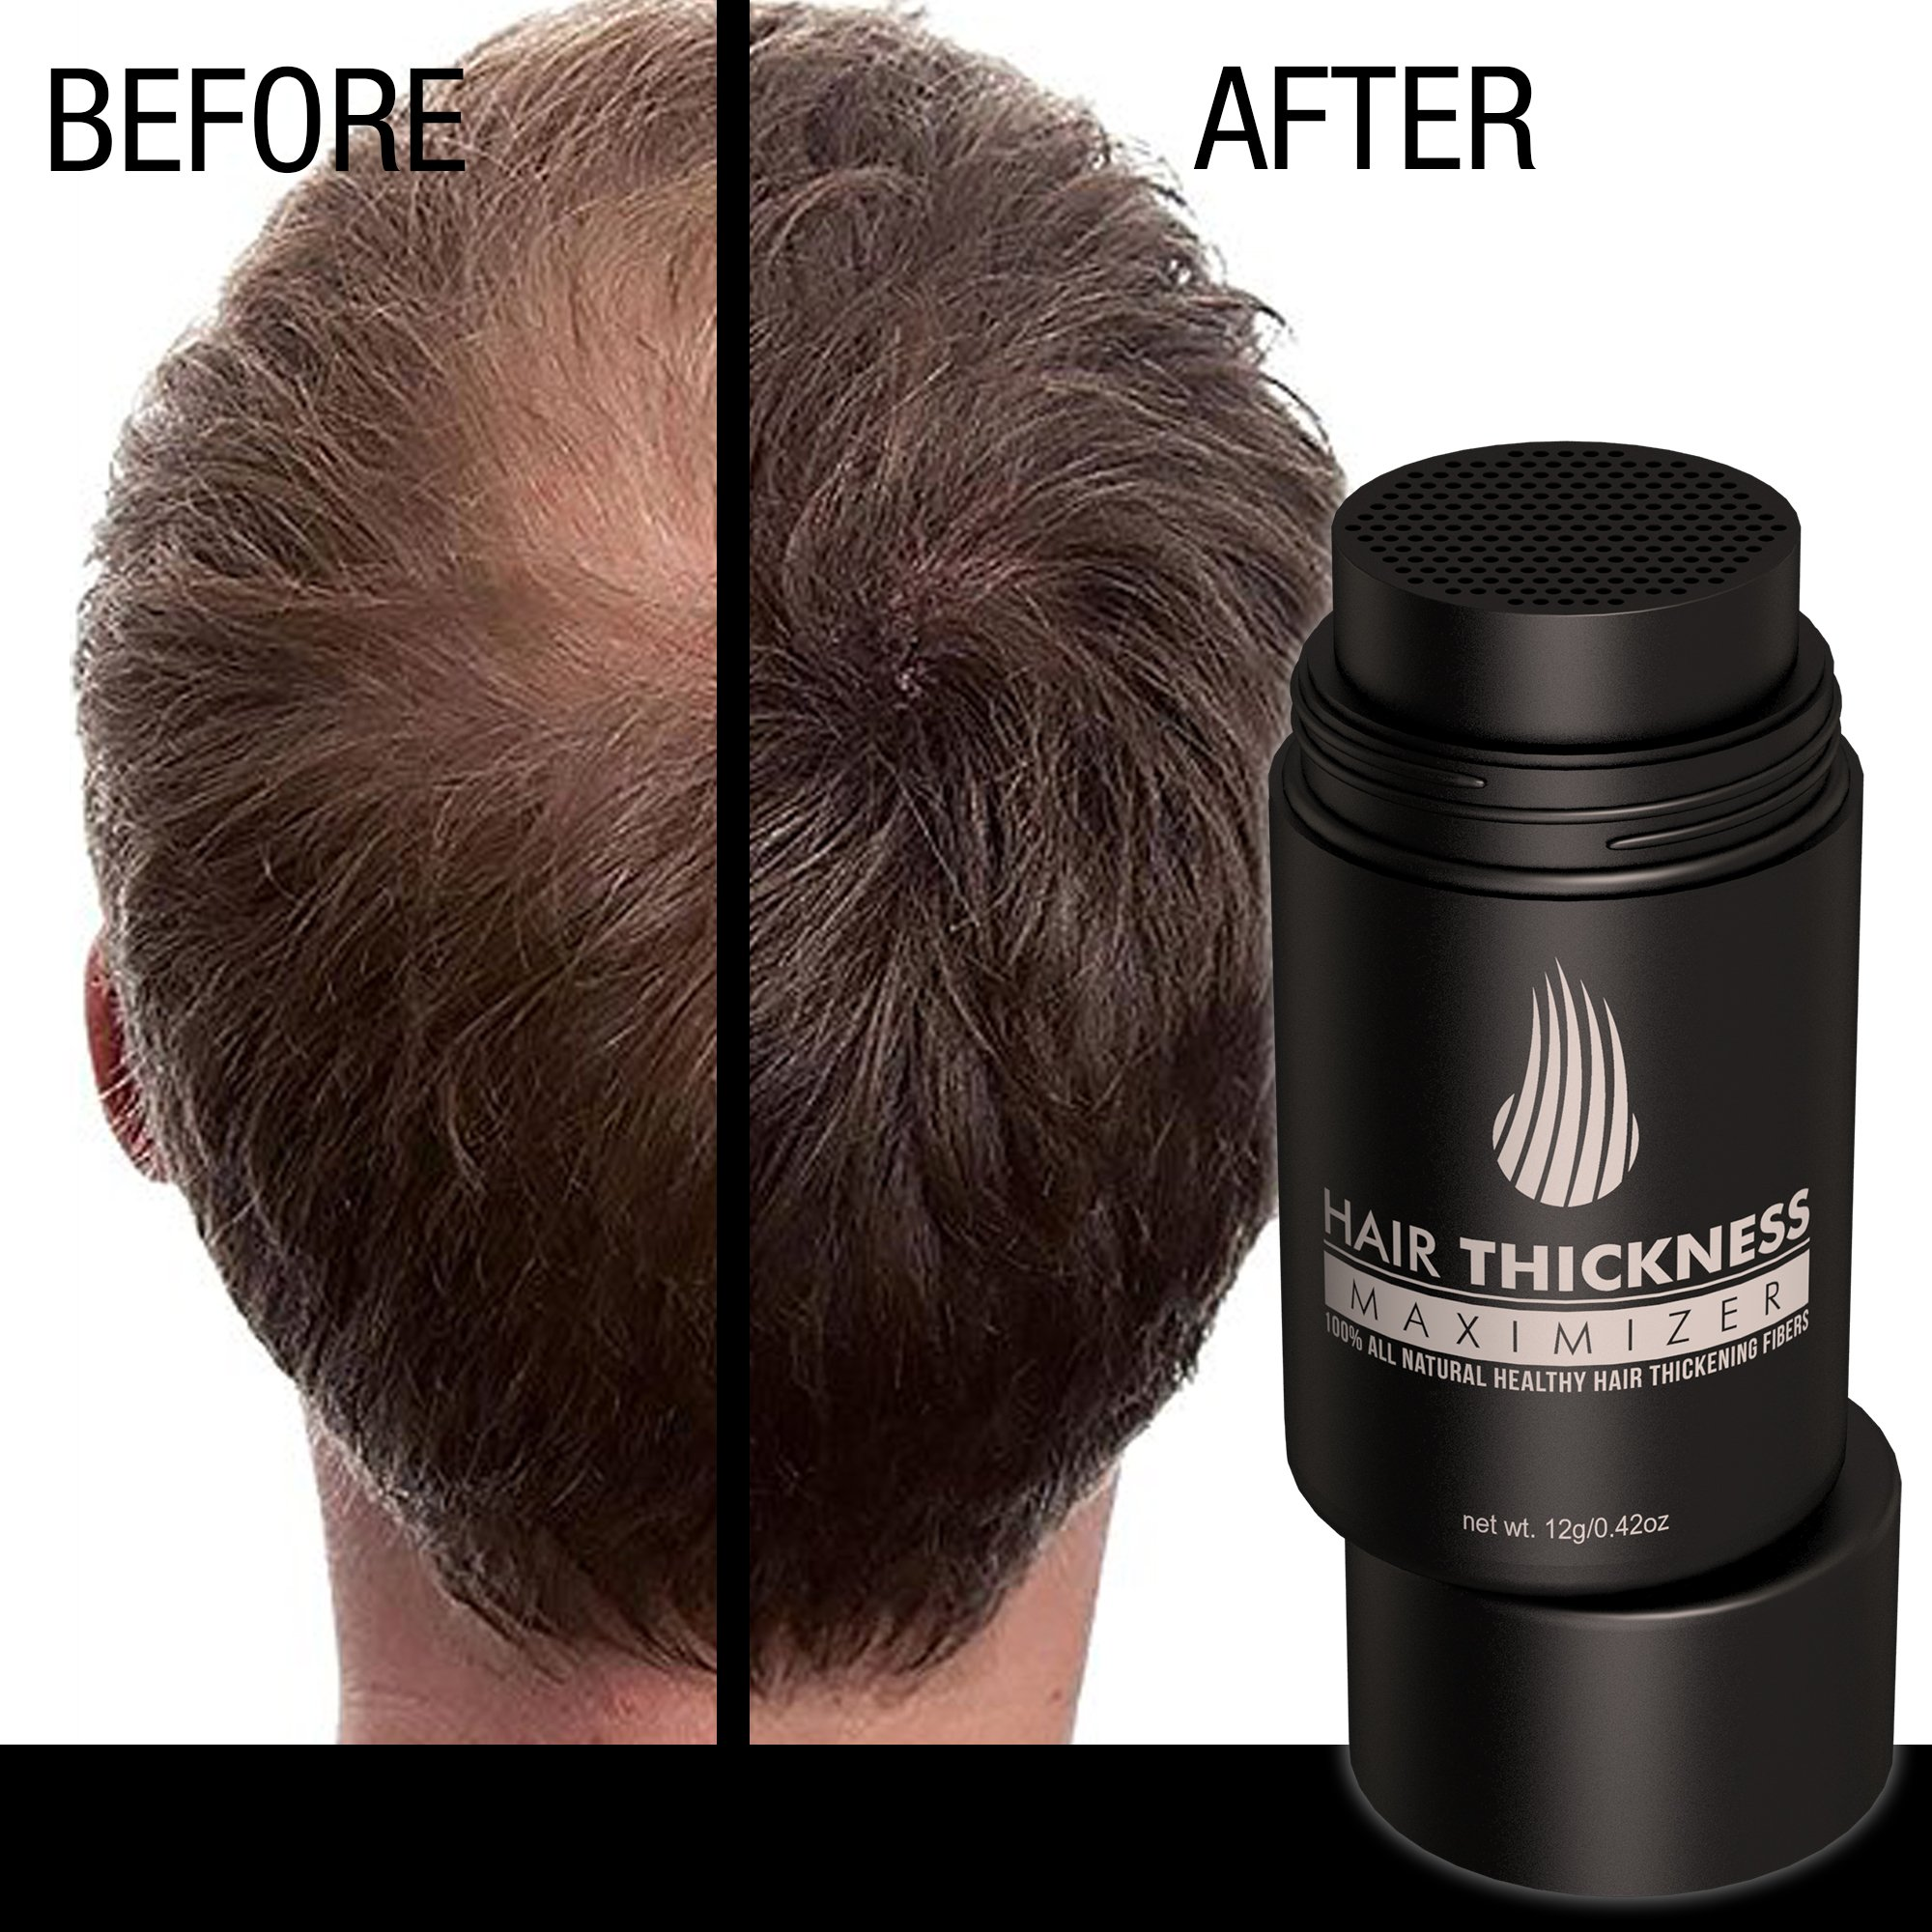 Hair Thickness Maximizer 2.0 - Safer Than Keratin Hair Building Fibers With 2nd Gen All Natural Plant Based Hair Loss Concealing Fillers For Instant Thickening of Thinning or Balding Hair by Hair Thickness Maximizer (Image #7)